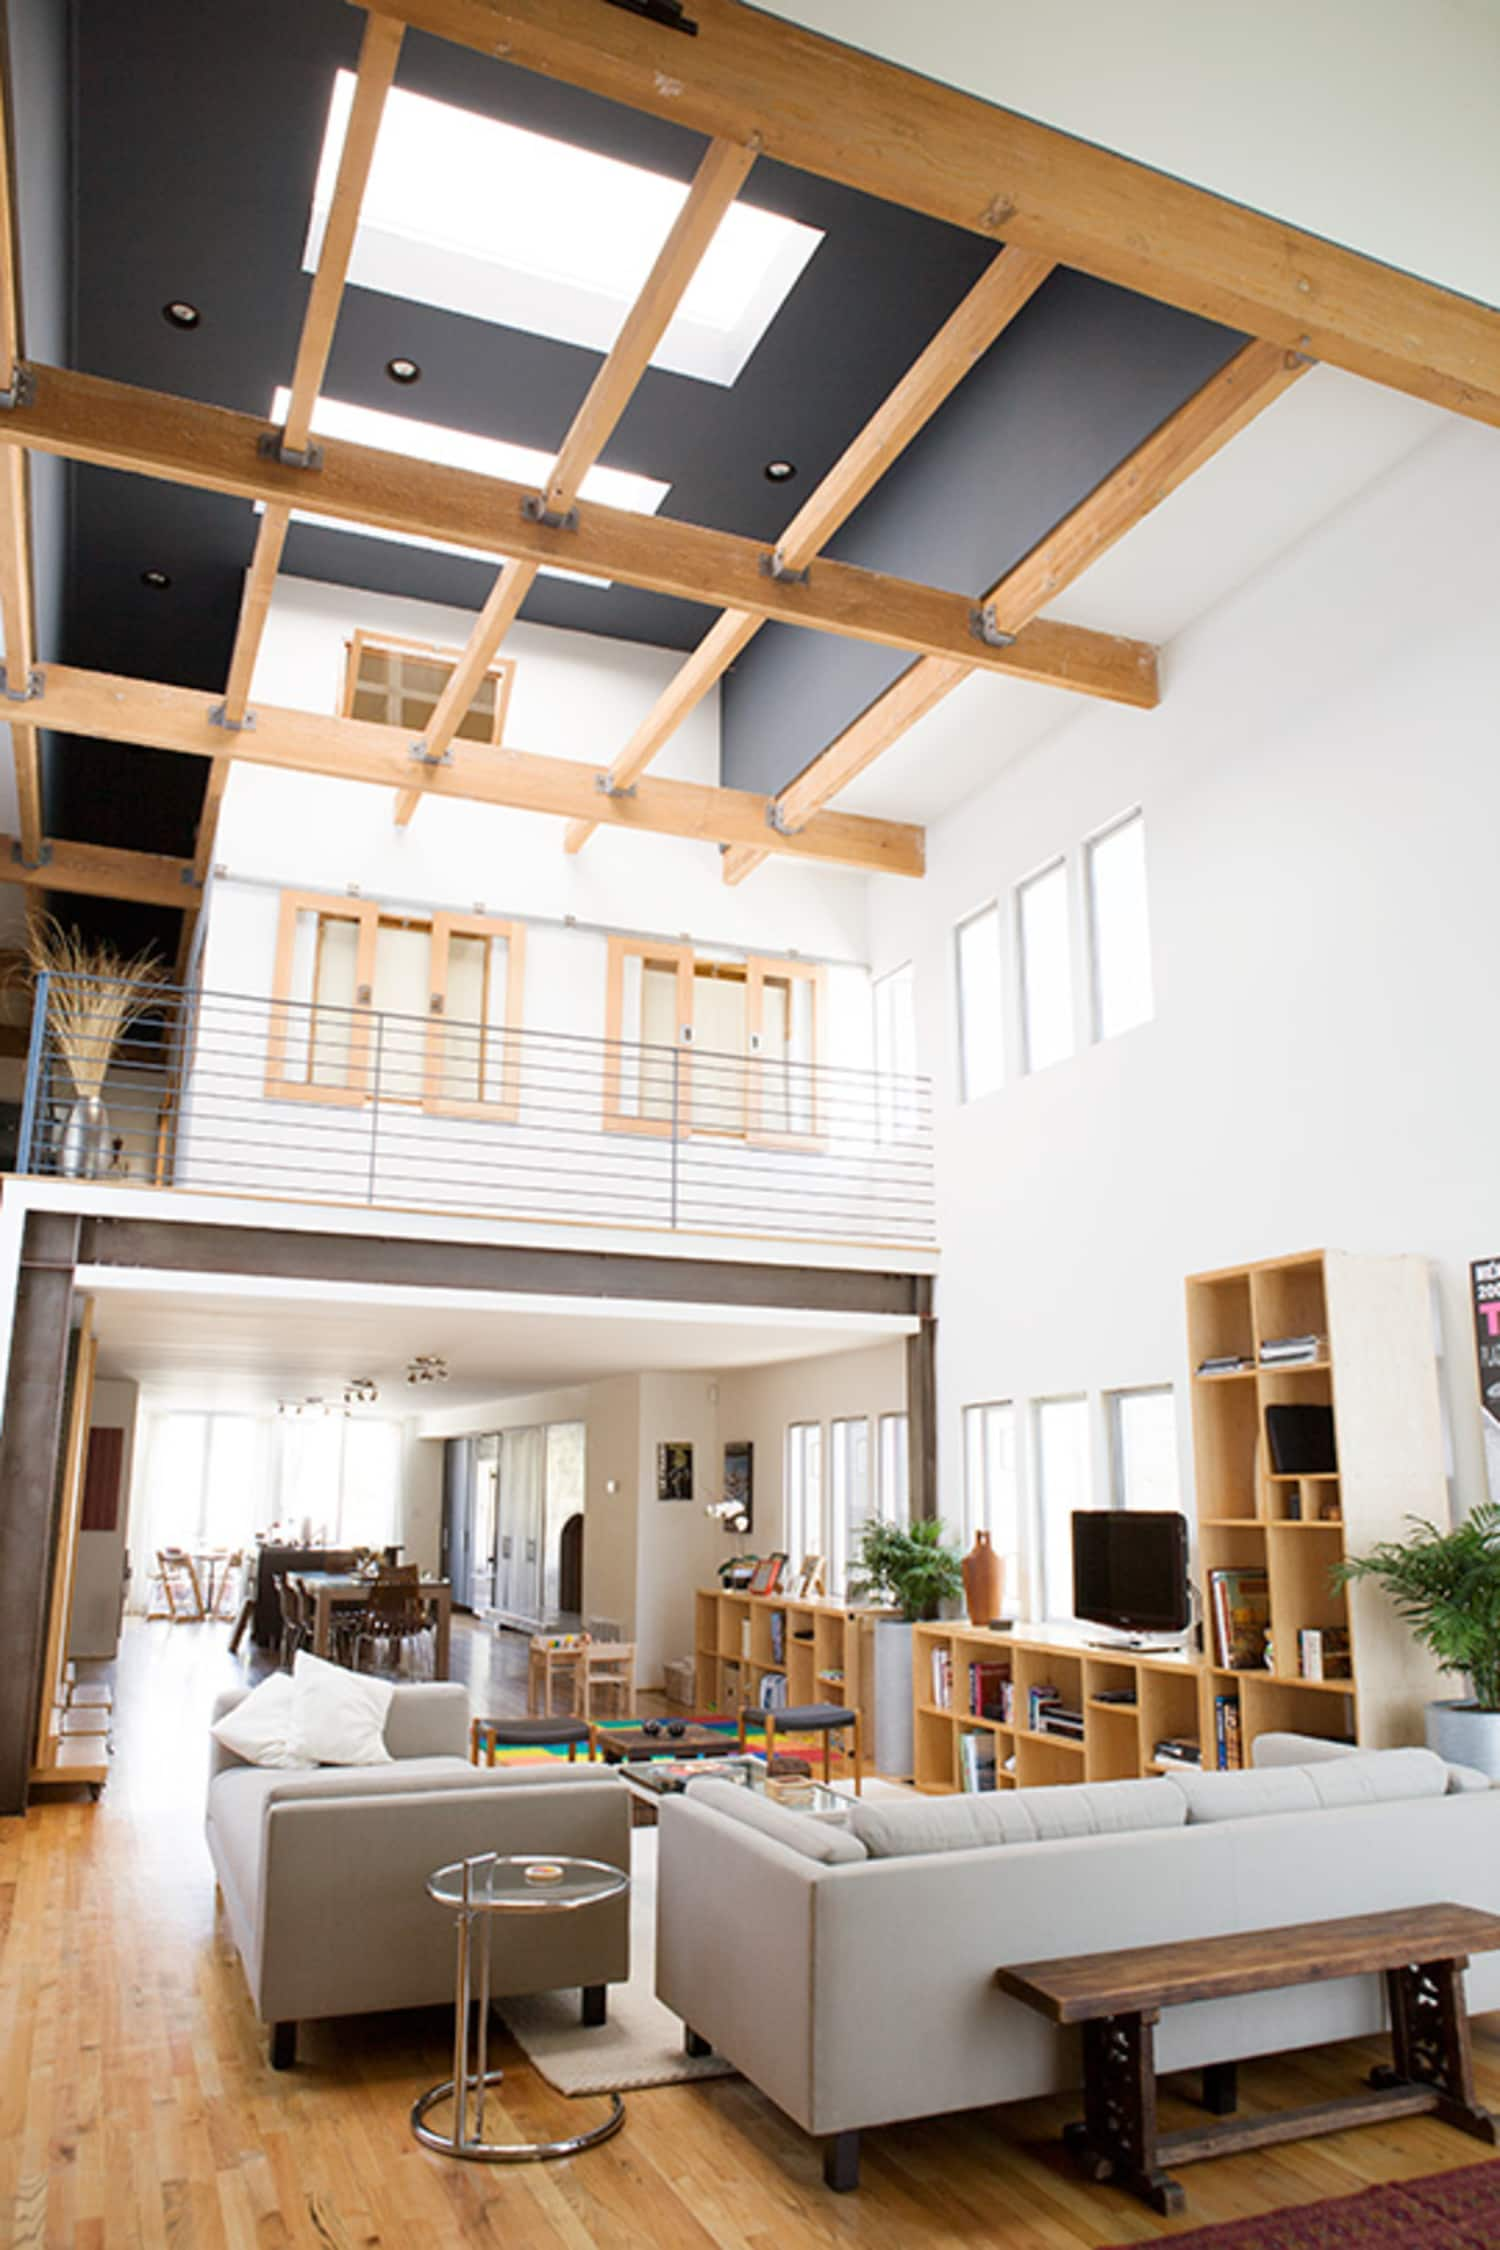 Paola and Steve's Light-Filled Modern Home